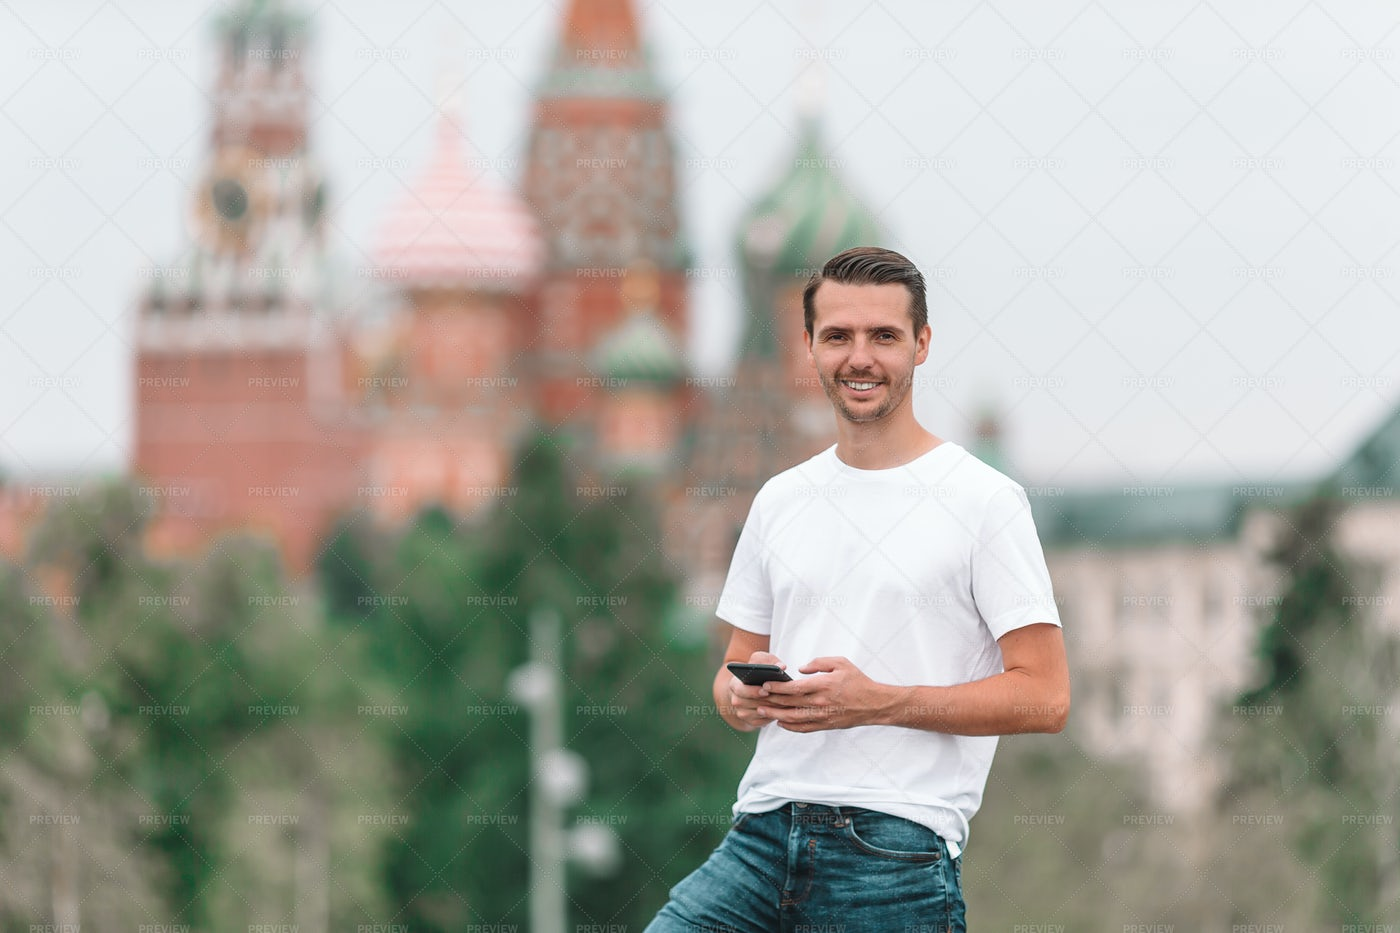 Man Texting In Red Square: Stock Photos